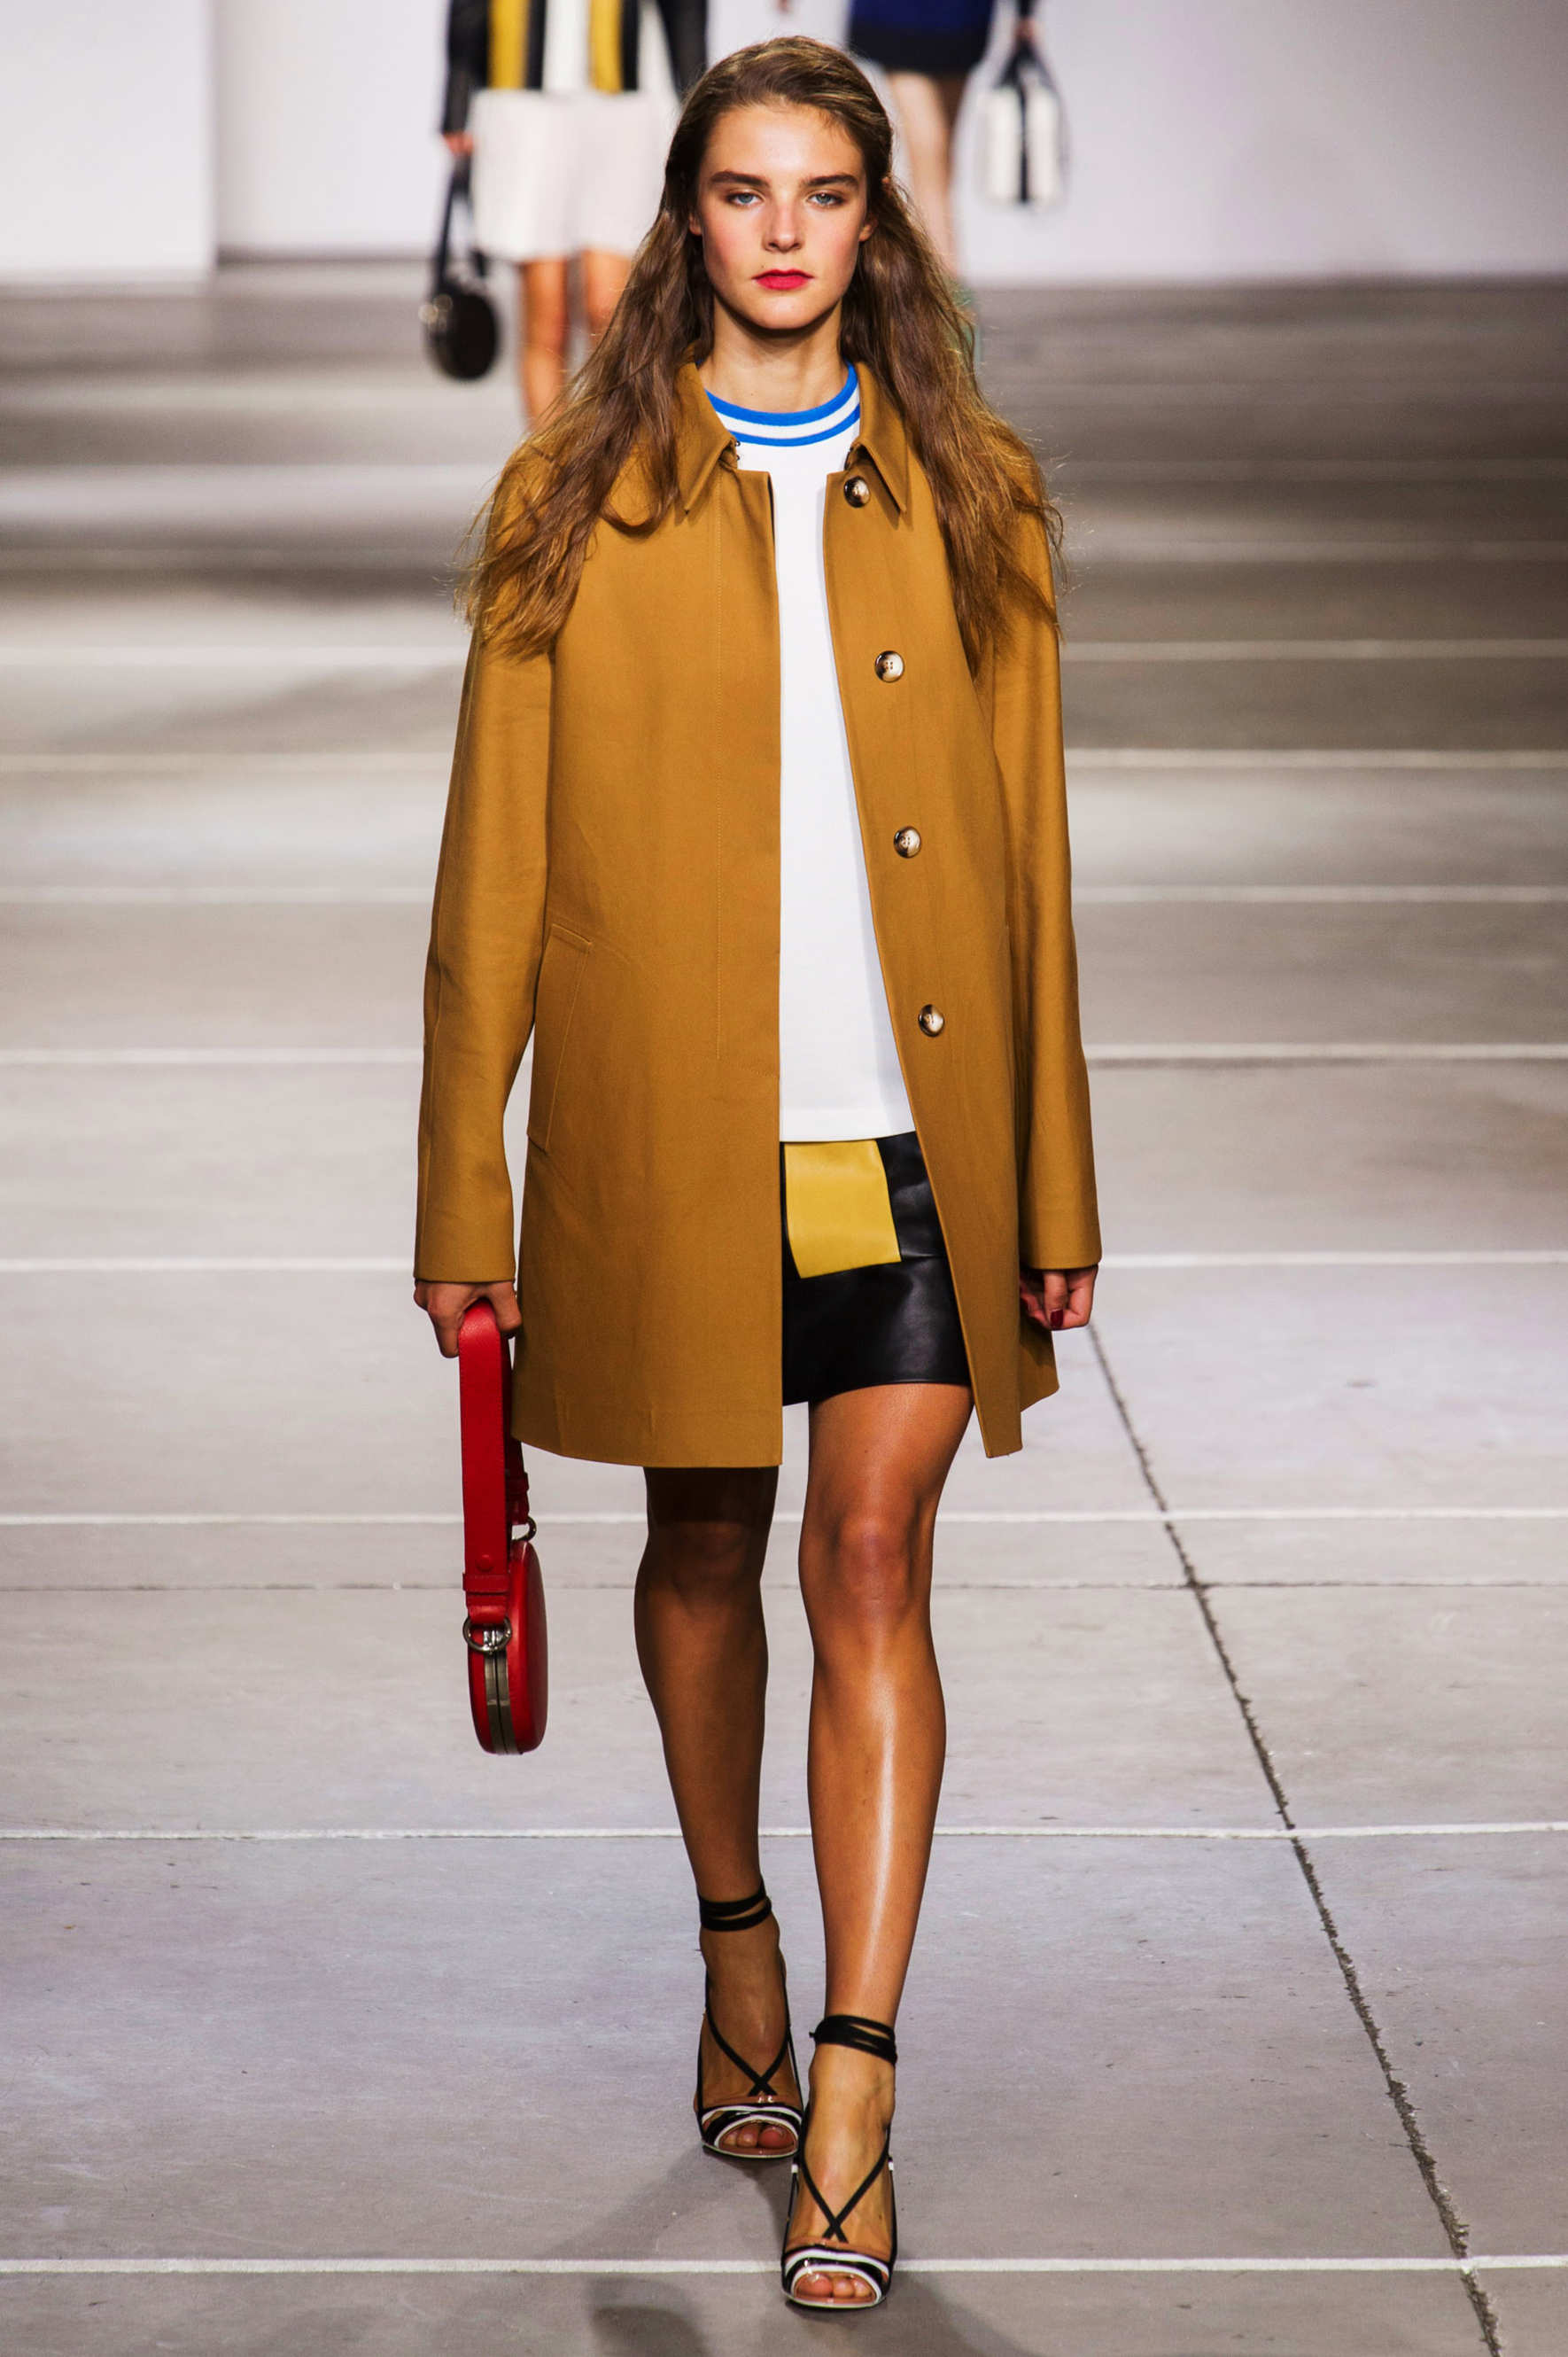 Topshop Unique Show At London Fashion: Dressing Elementary's Joan Watson With Spring 2015 London